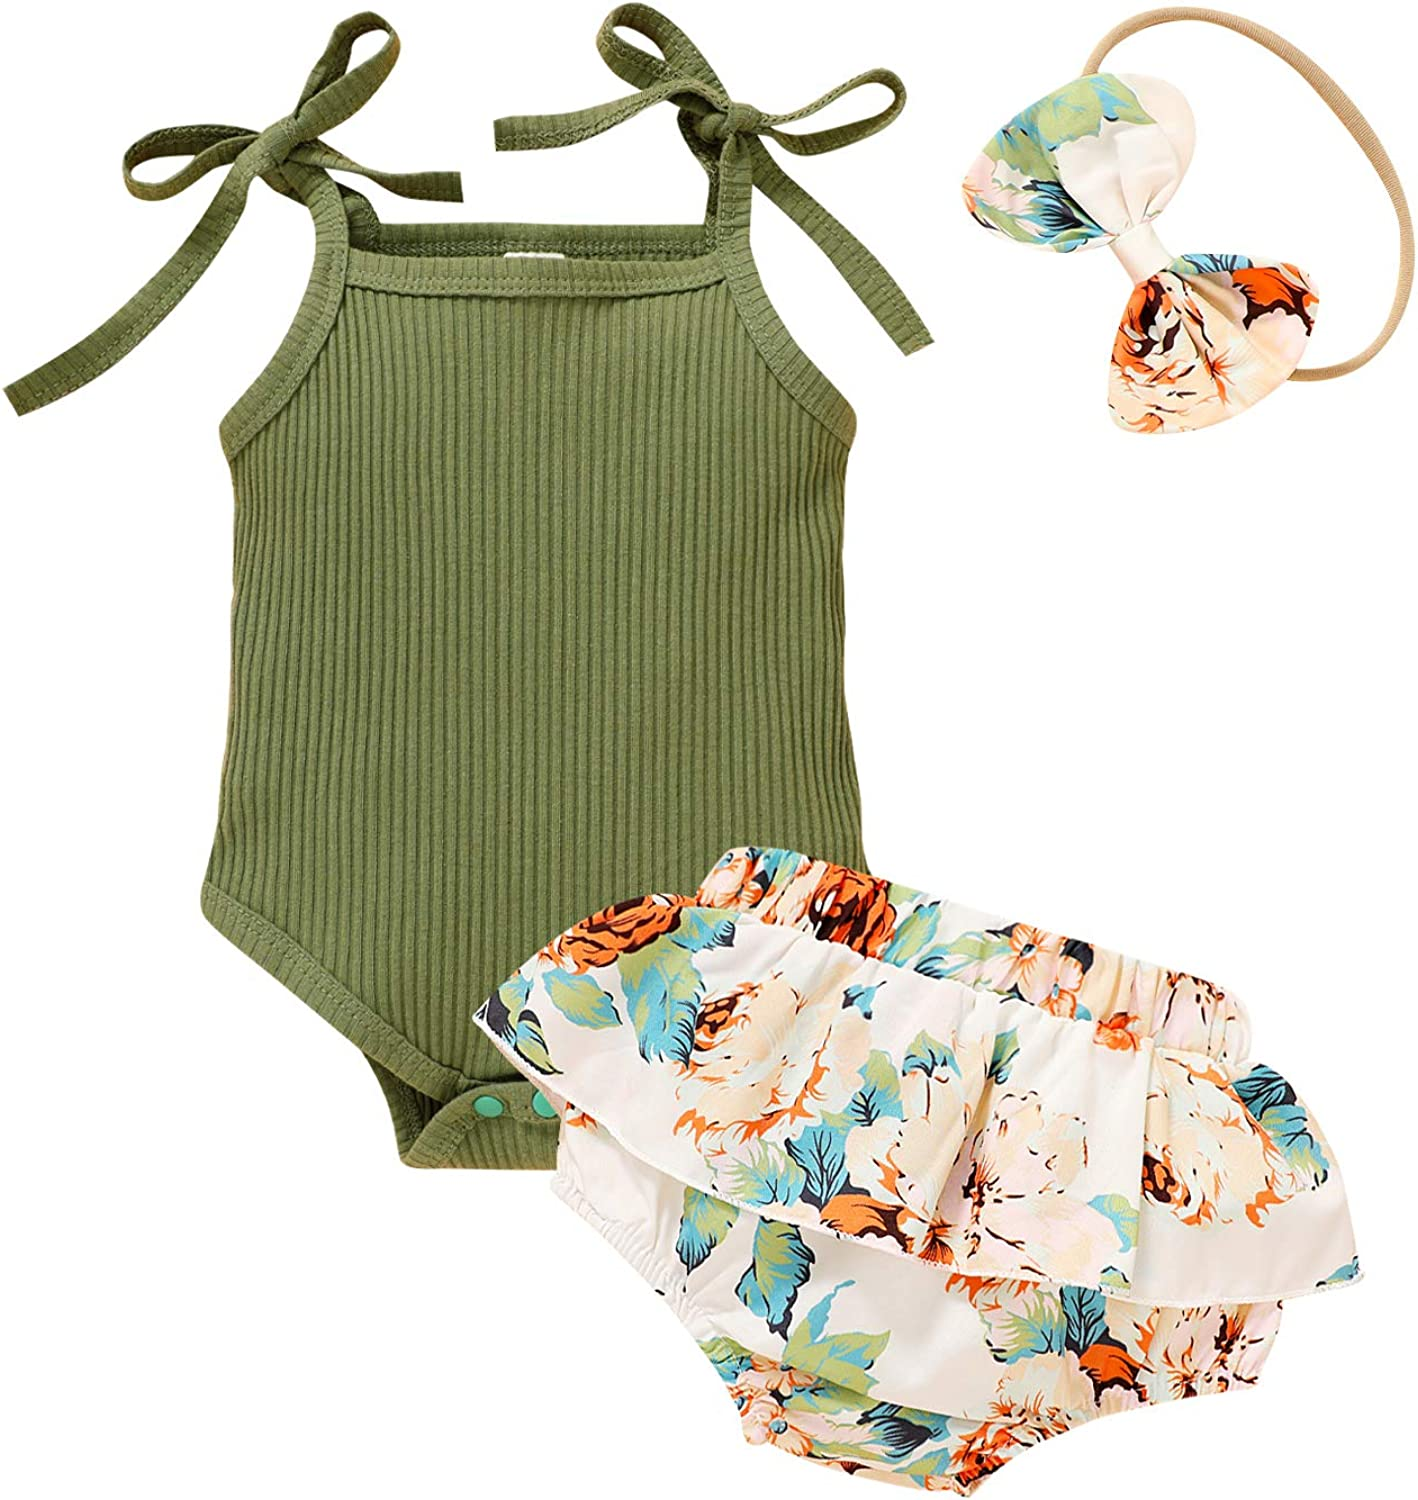 Little MISS Sassy Newborn Girl Summer Outfits Straps Romper and Ruffled Shorts Set Baby Girl Clothing